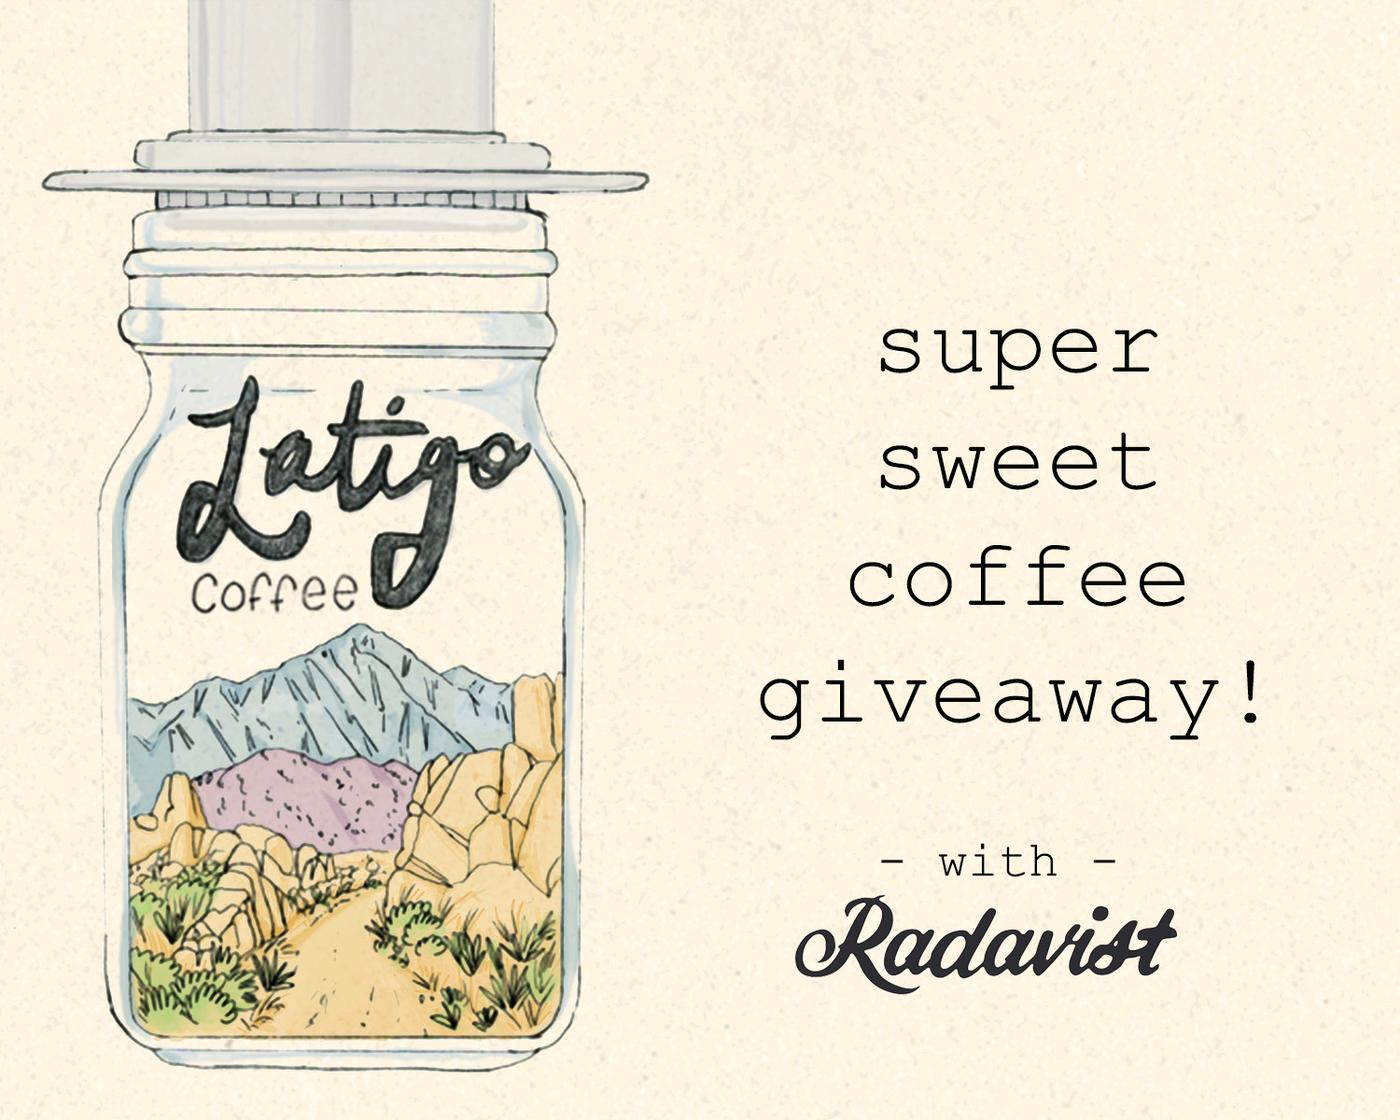 Win a FREE Coffee Subscription from Our Friends at Latigo Coffee